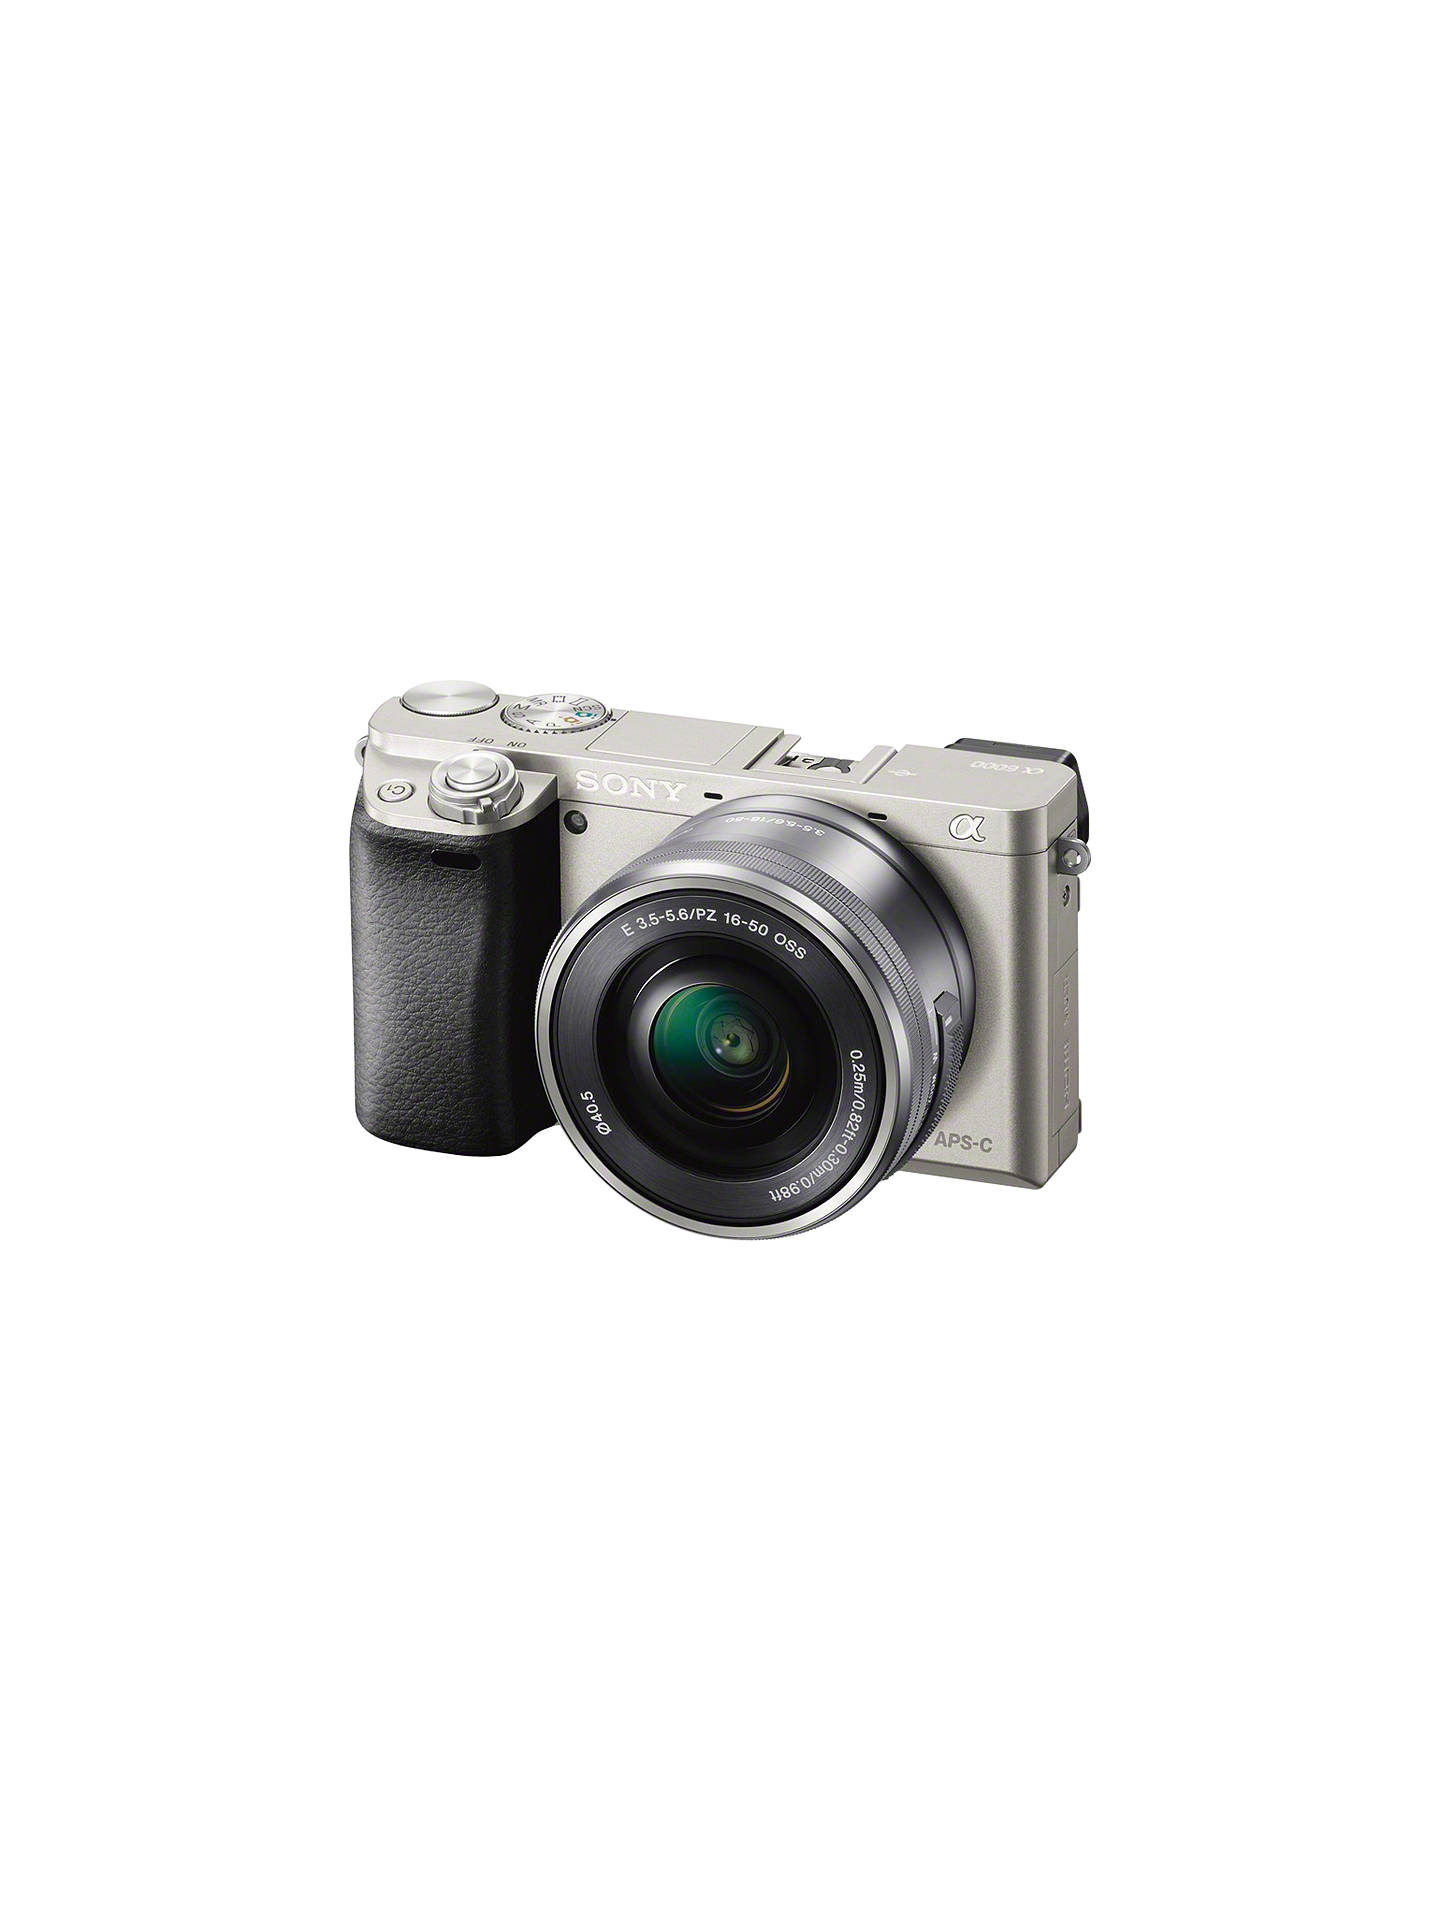 "BuySony A6000 Compact System Camera with 16-50mm OSS Lens, HD 1080p, 24.3MP, Wi-Fi, NFC, OLED EVF, 3"" Tilting Screen, Silver Online at johnlewis.com"